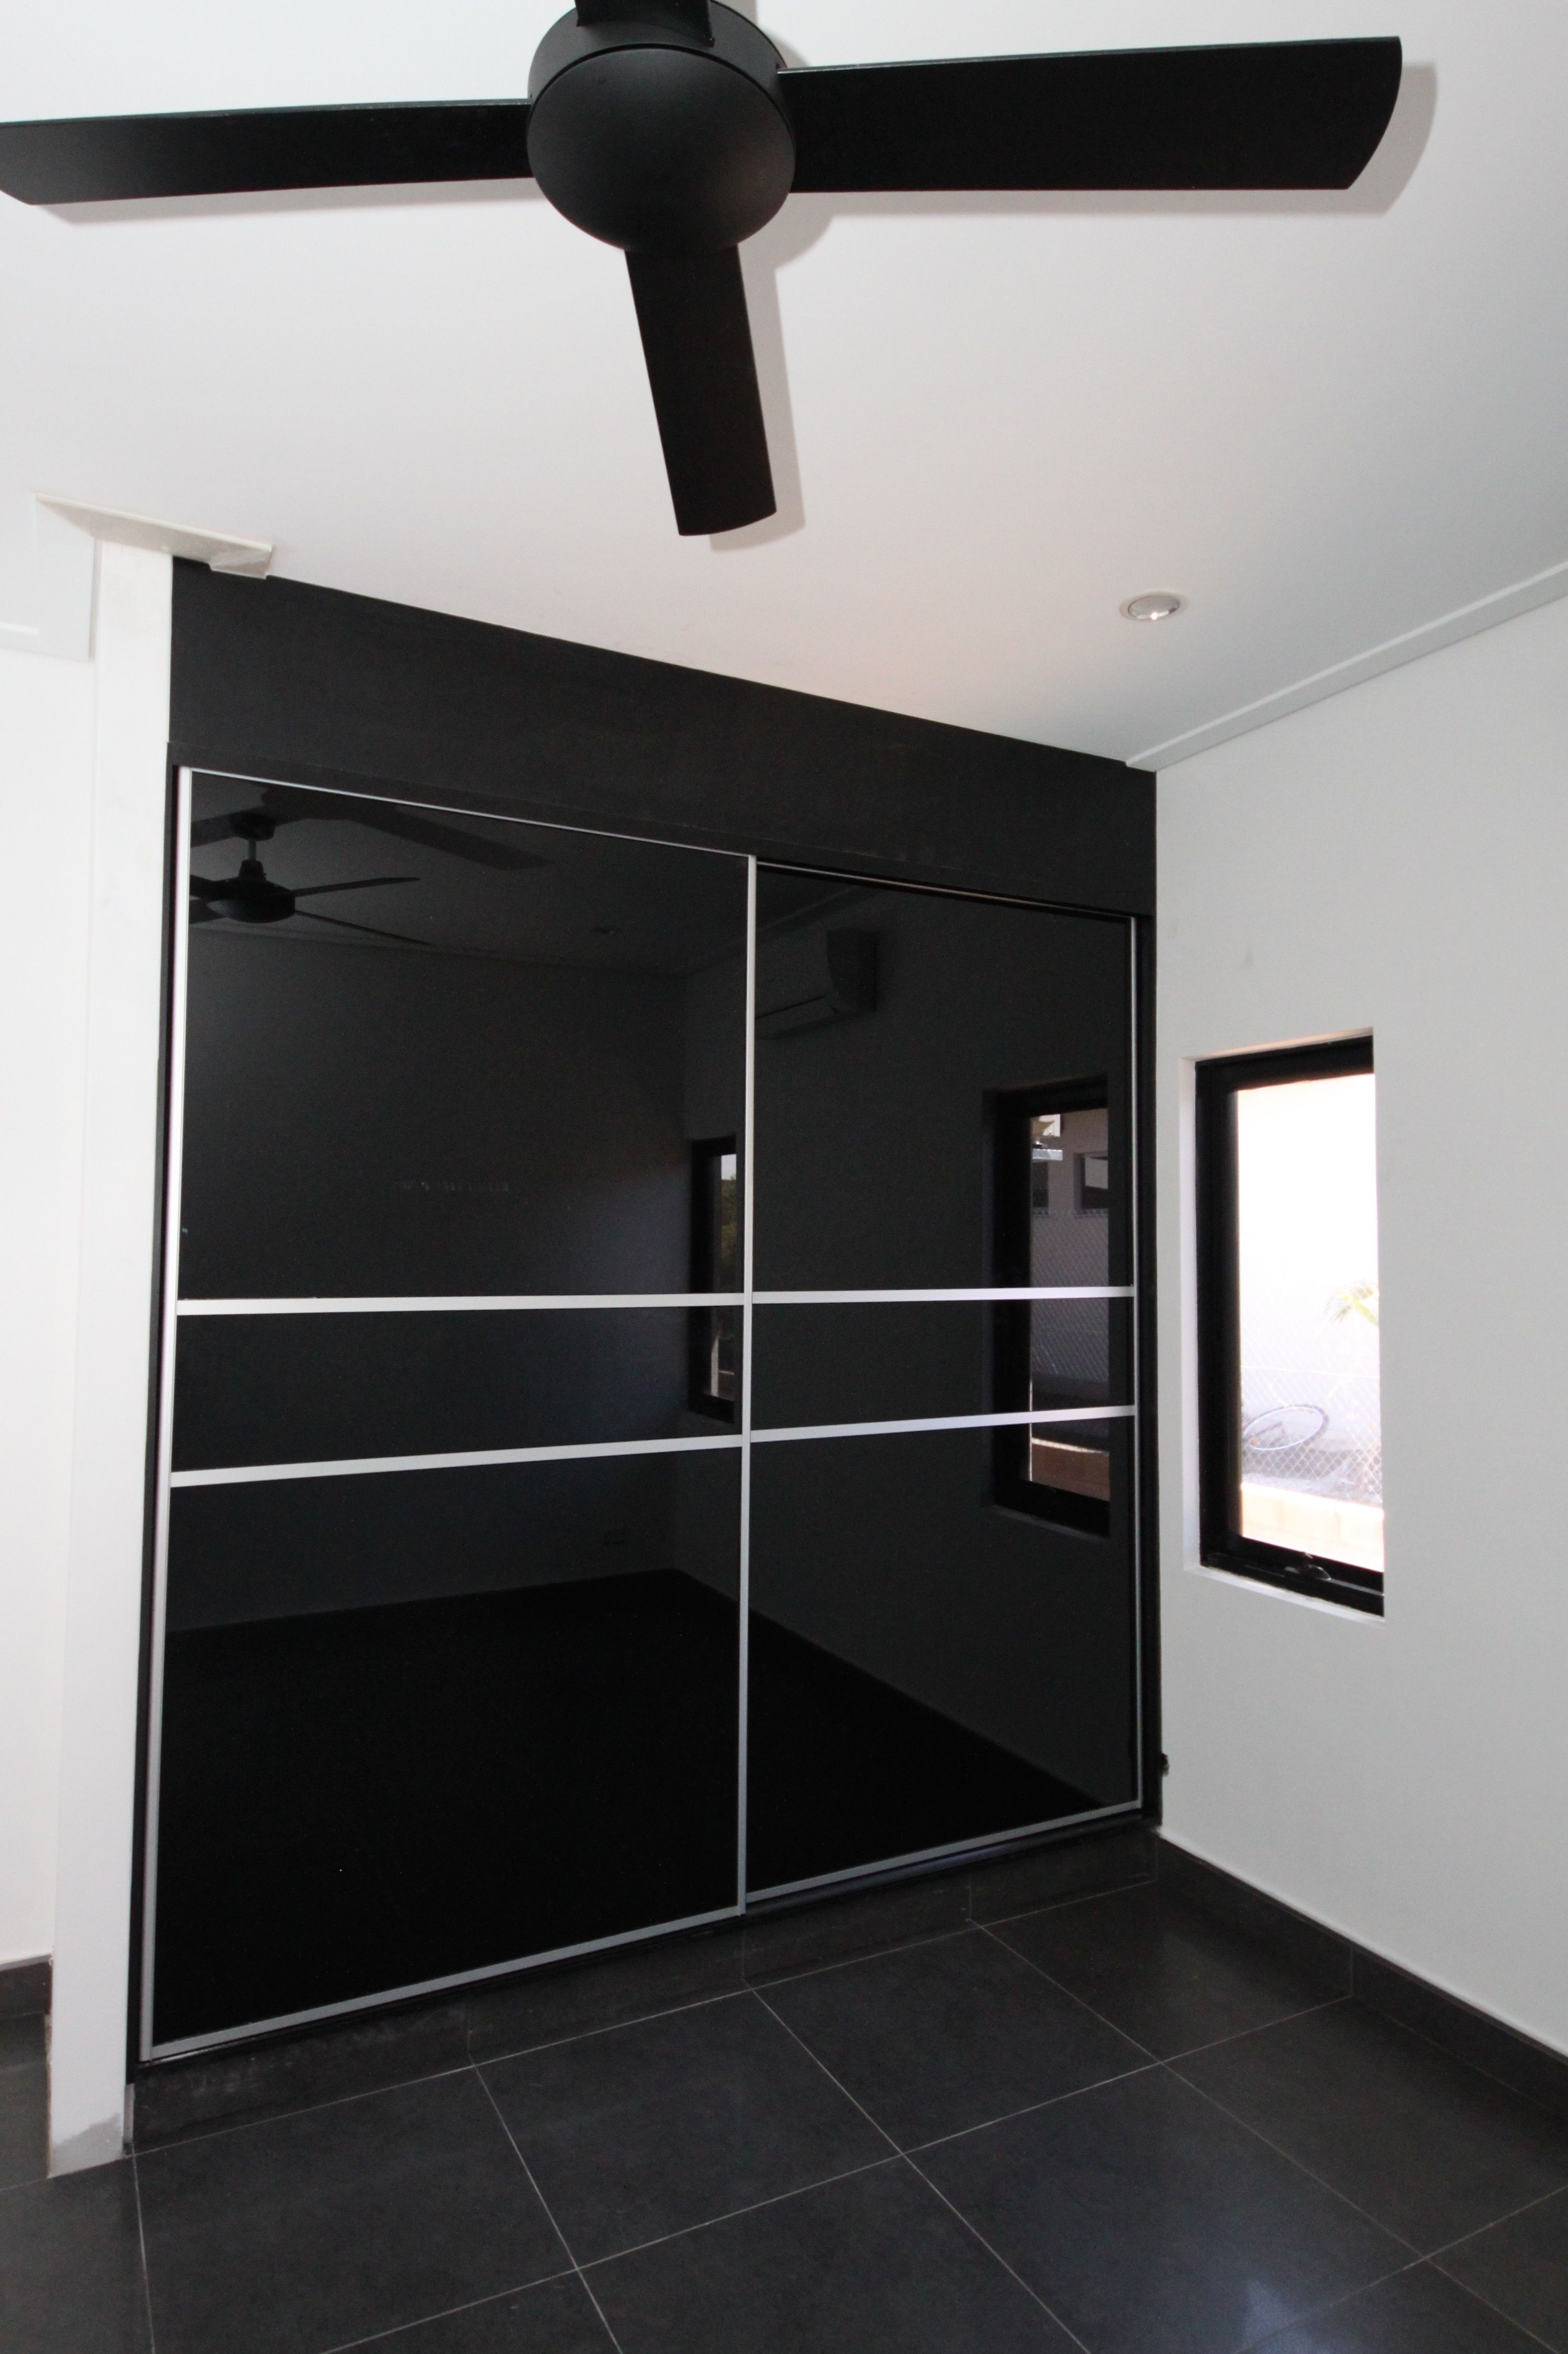 The Sliding Black Glass Doors In This Bedroom Compliment